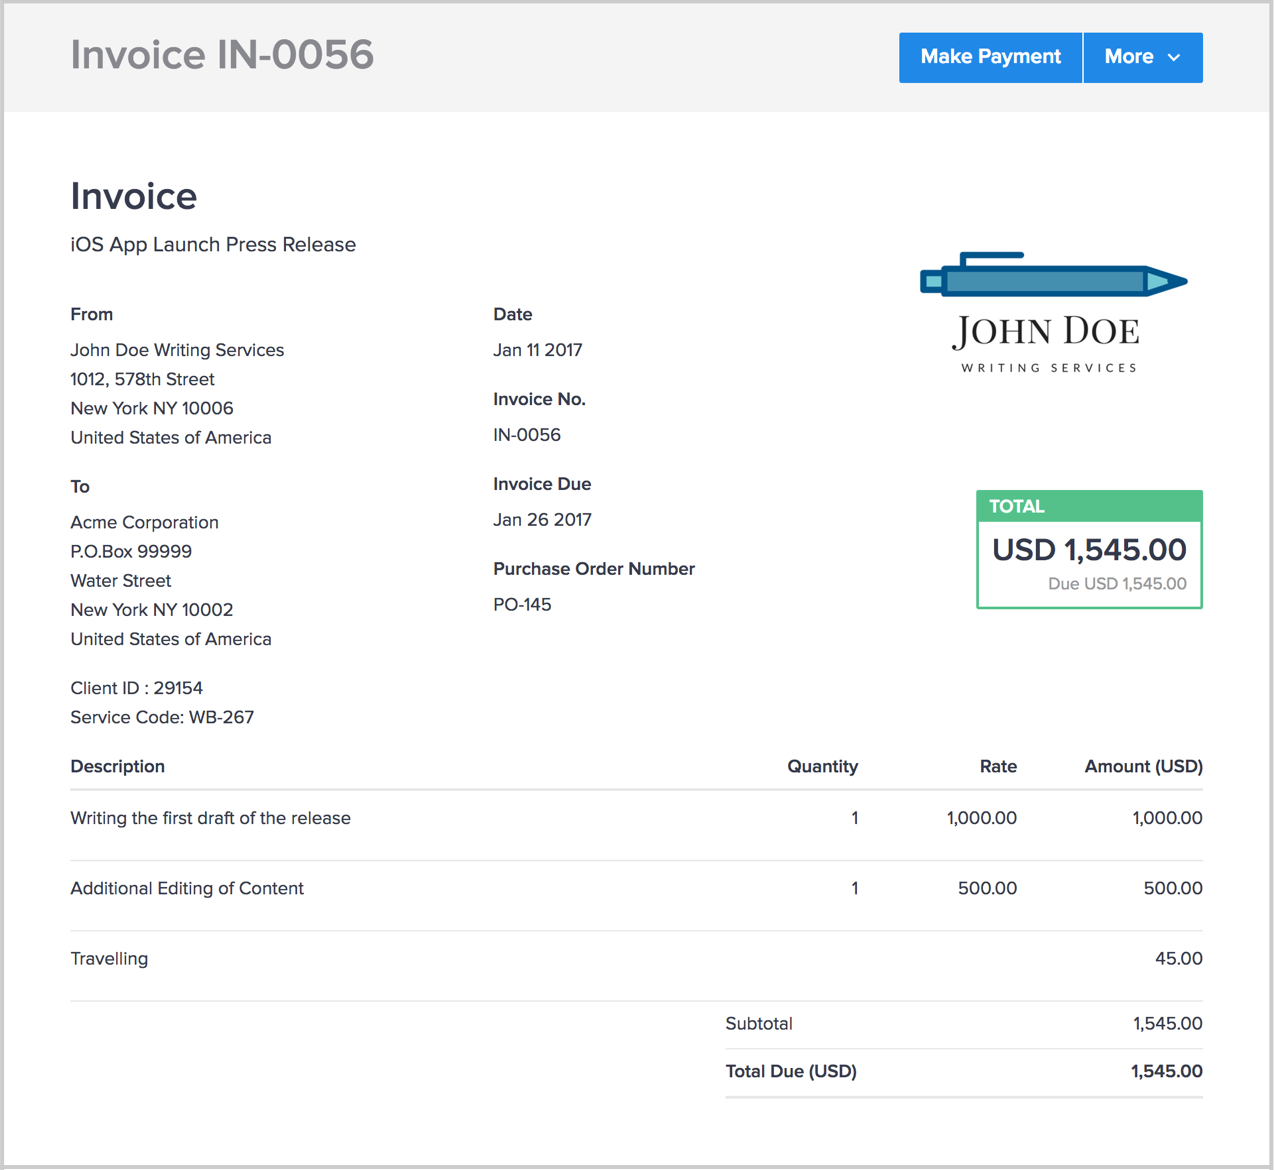 Downloadable Invoice Excel Invoicing For Writers  Hiveage Cra Tax Receipts Pdf with Towing Service Invoice Template Writerinvoice Invoice Template Microsoft Word Pdf